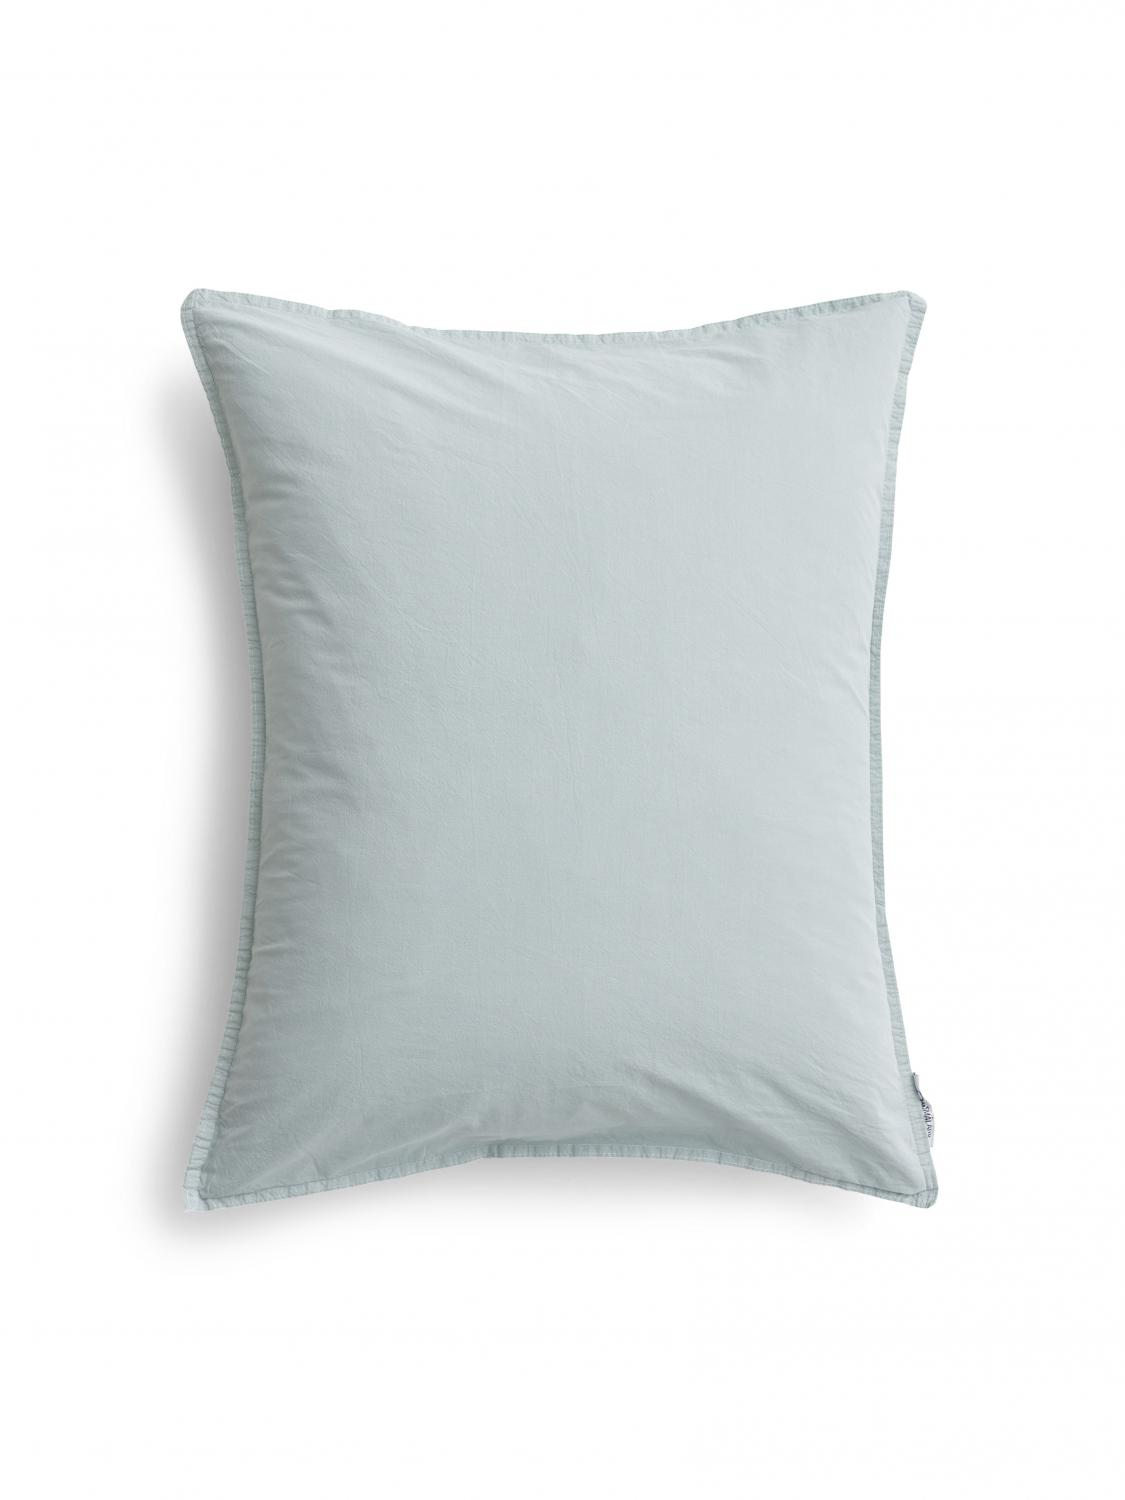 50x60cm Pillowcase Crinkle Sky